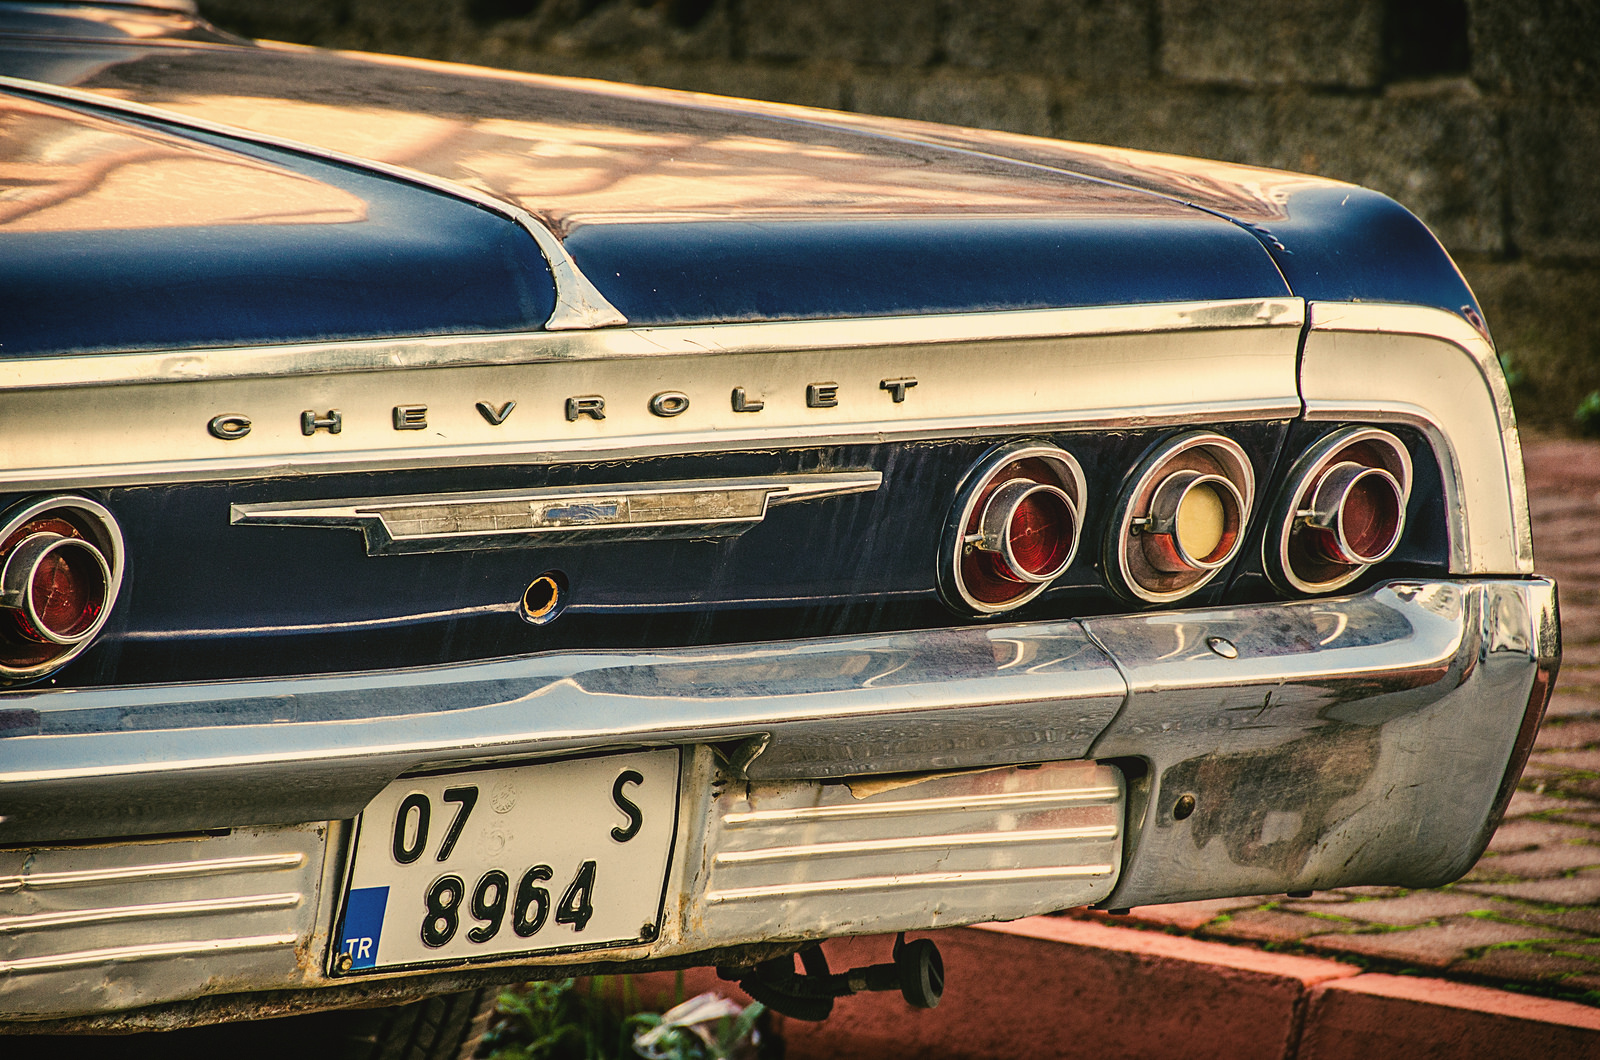 A photo of a classic Chevrolet in Antalya.